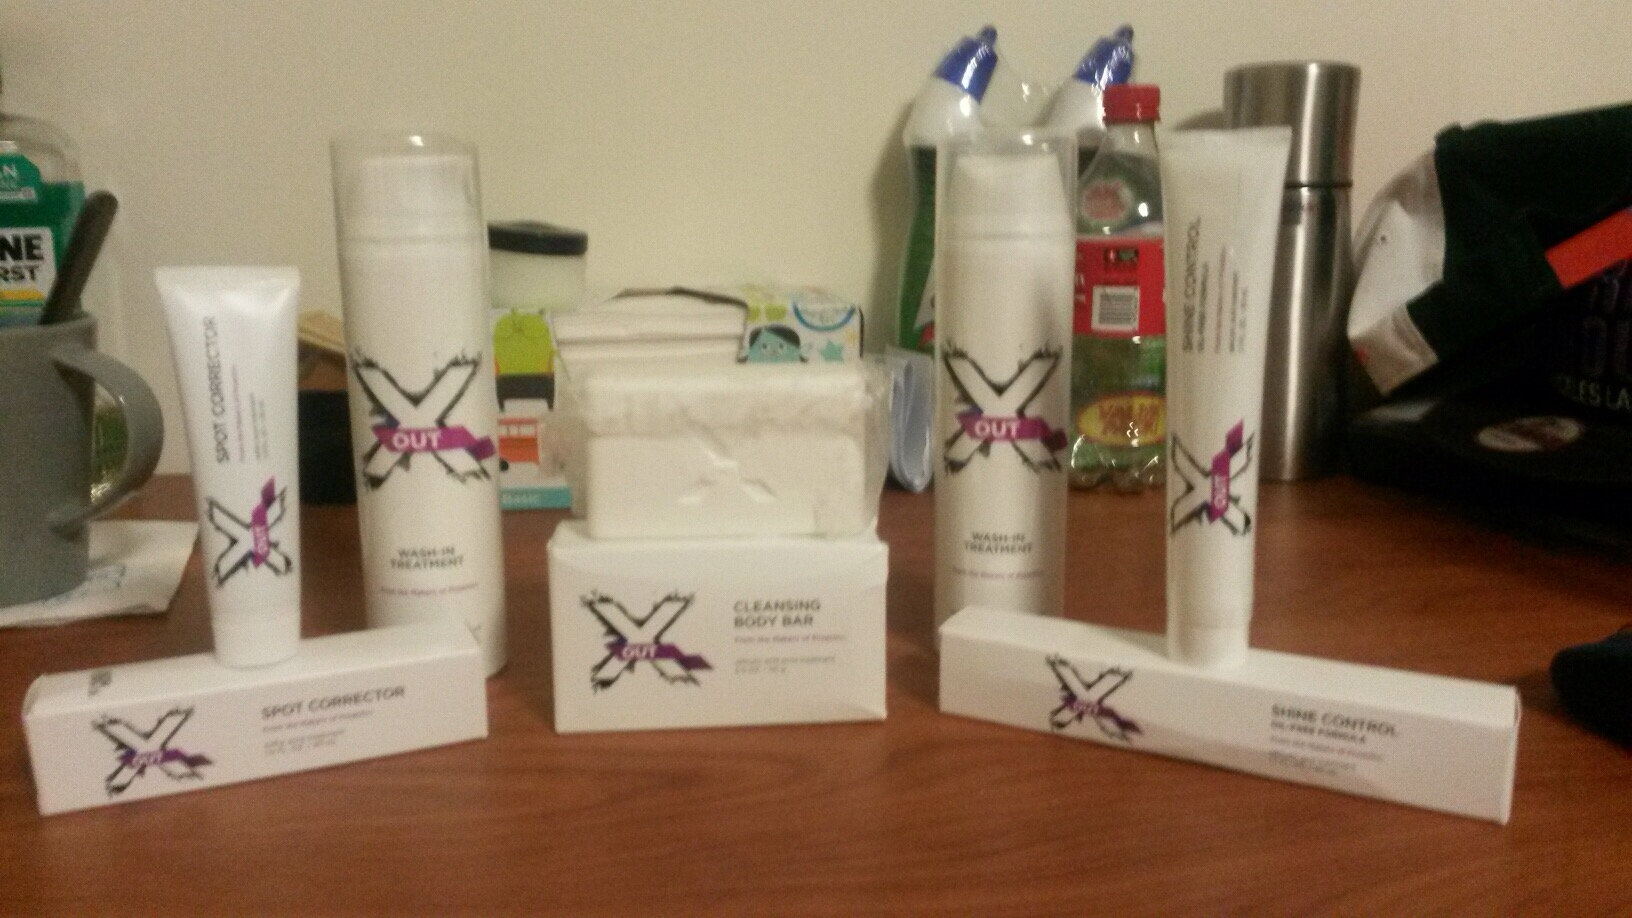 x out acne treatment line